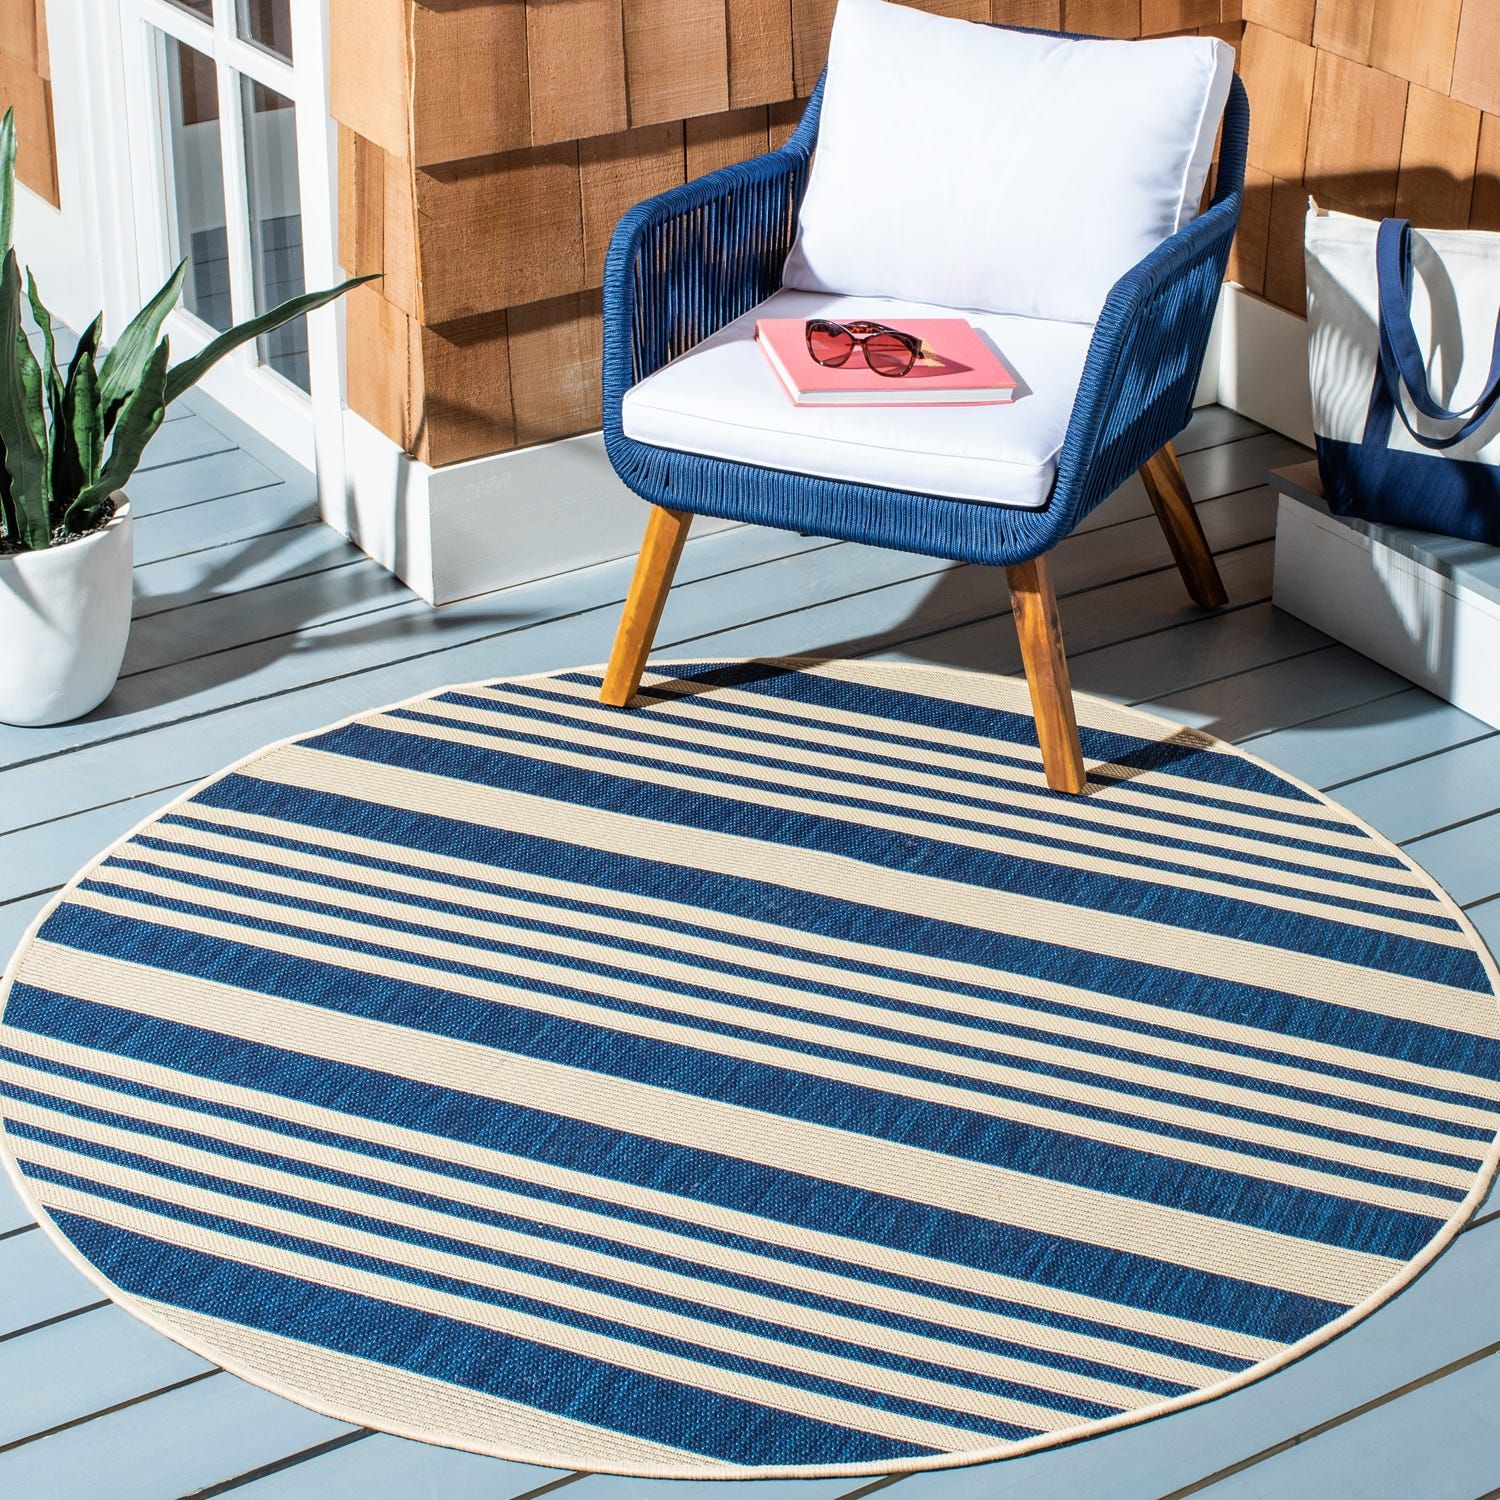 Pier 1 Outdoor Summer Decor Furniture With A Coastal Beach Vibe In 2020 Indoor Outdoor Rugs Outdoor Rugs Summer Furniture